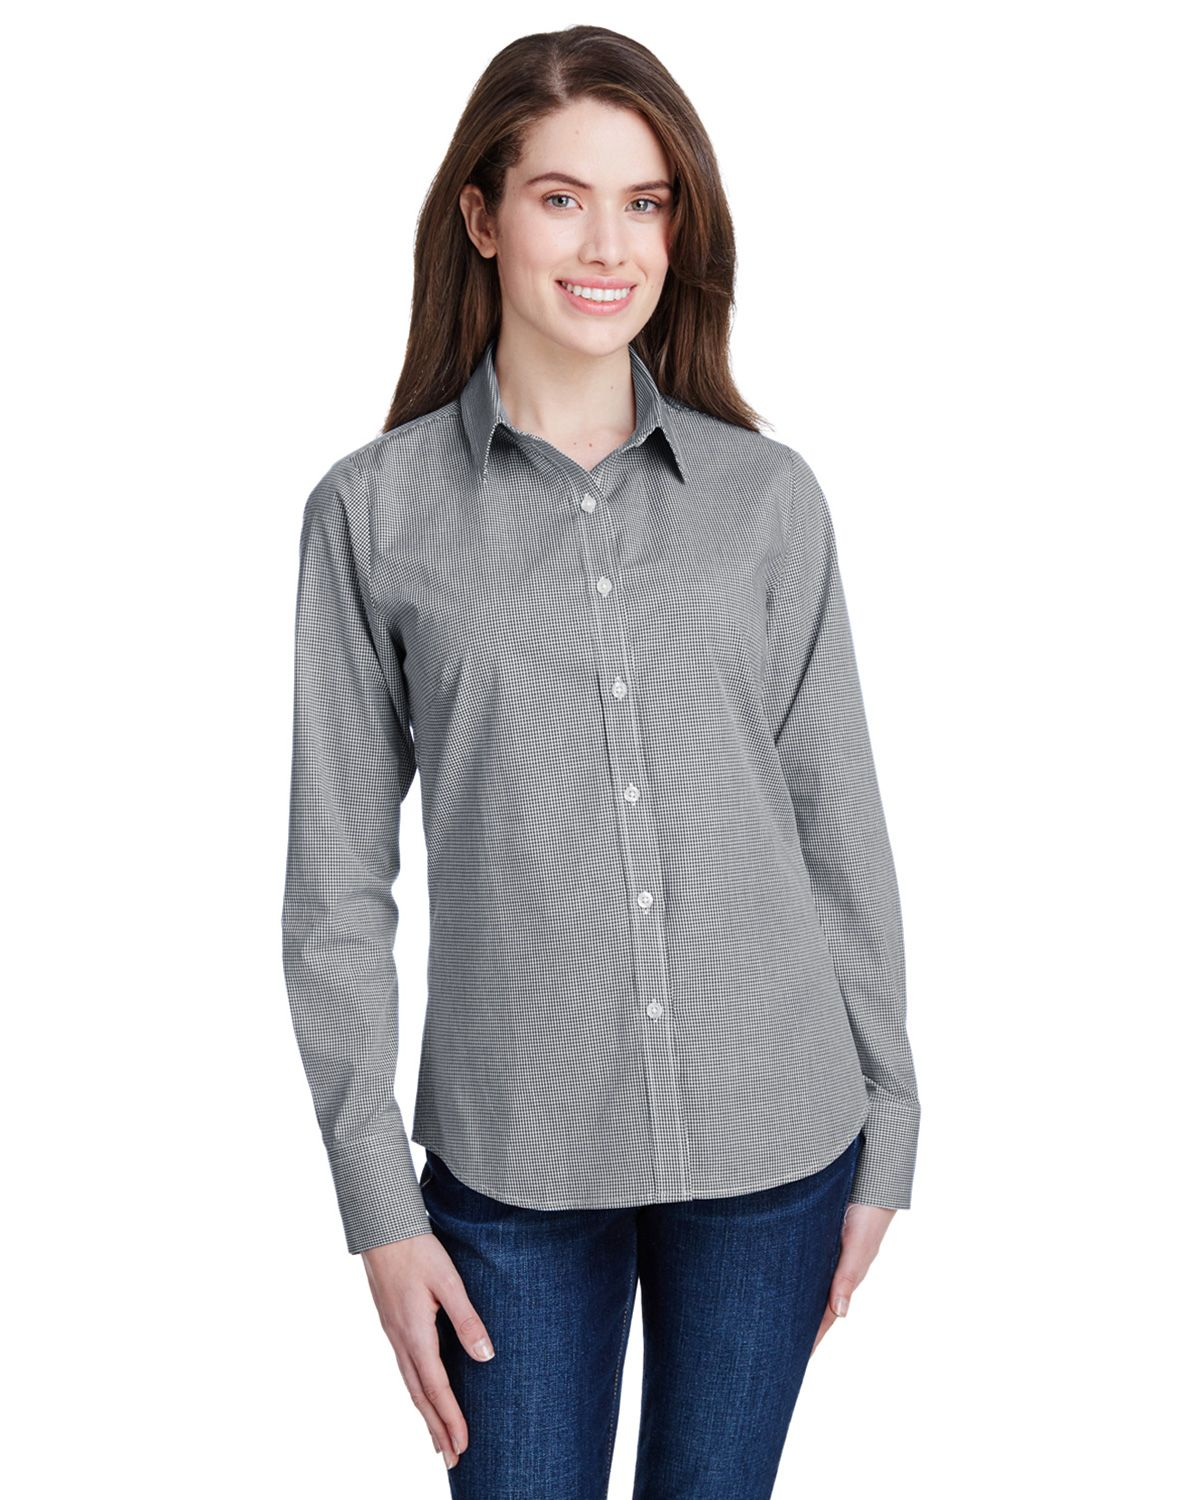 Artisan Collection RP320 Women's Microcheck Gingham Long-Sleeve Cotton Shirt